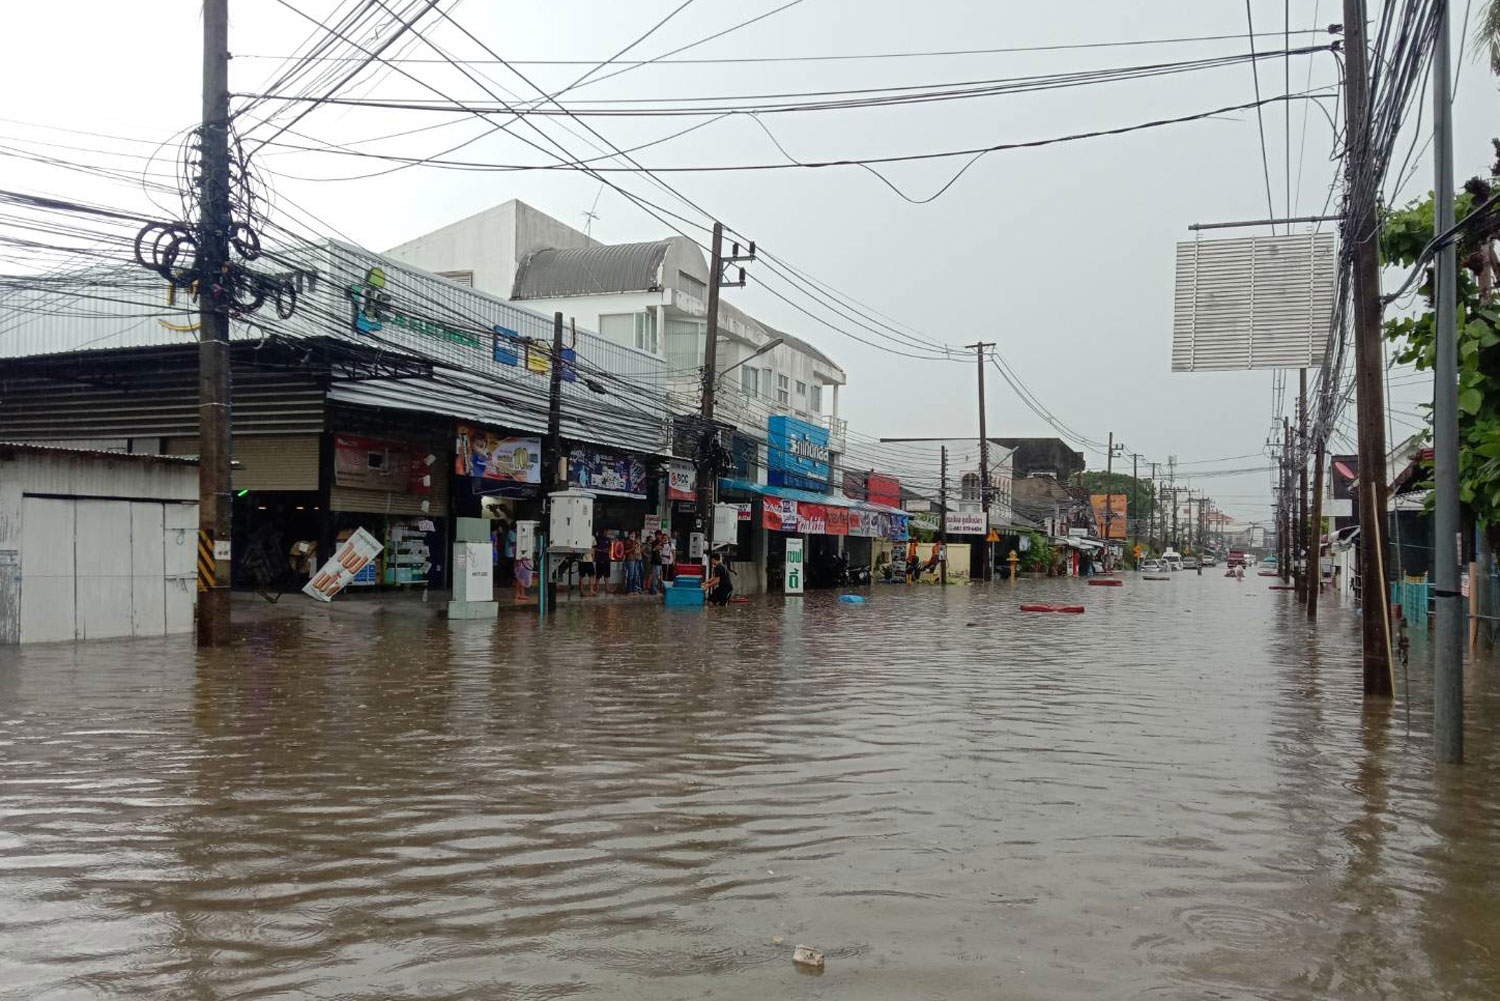 Tha Khraeng intersection on Sakdidet Road is flooded after two hours of heavy rain in Muang district of Phuket on Saturday morning. (Photo: Achadtaya Chuenniran)